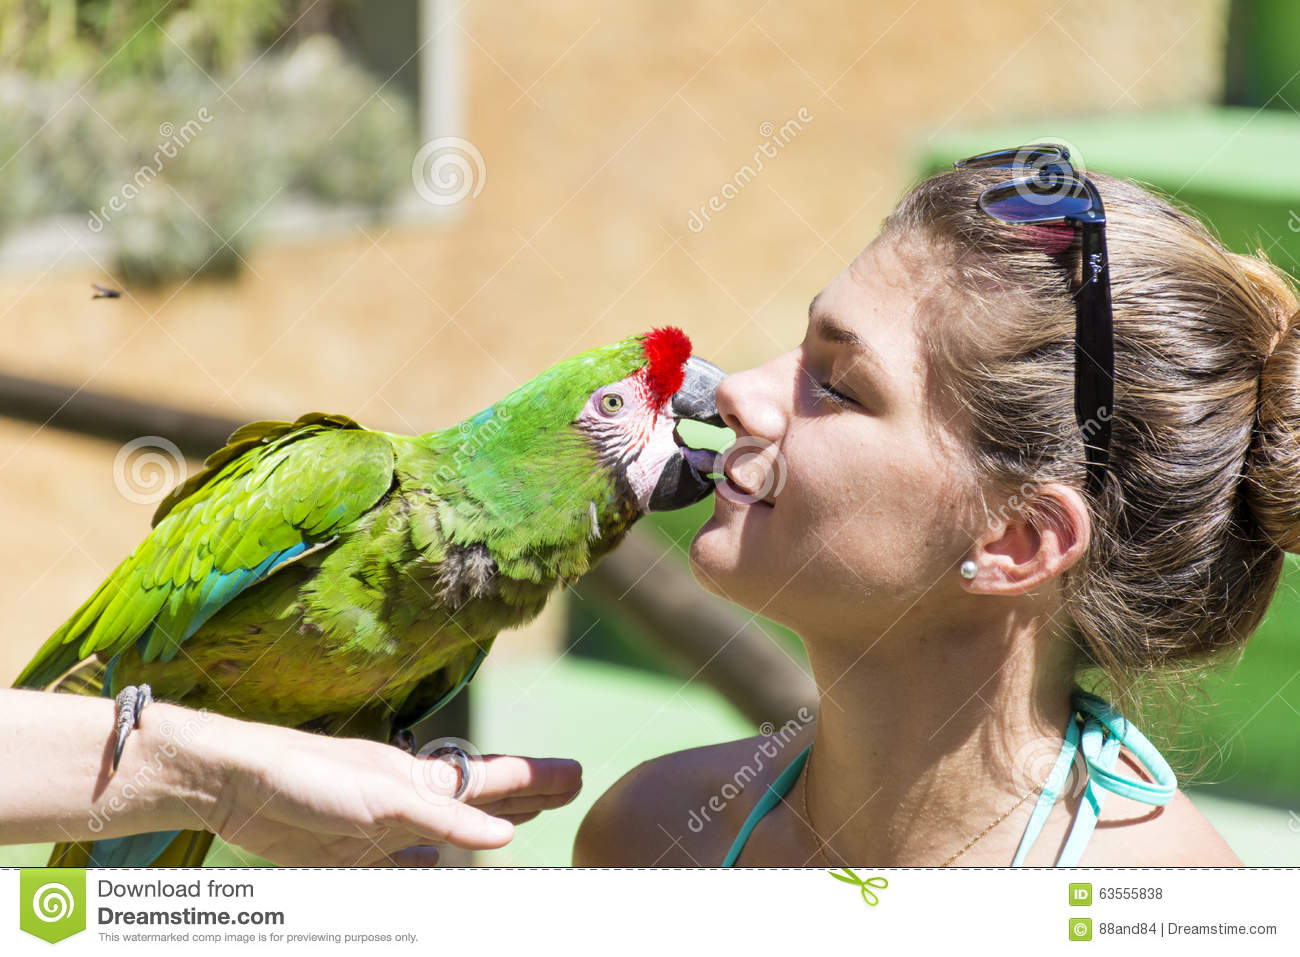 Image of: Funny Green Parrot Kissing Girl love Animals Dreamstimecom Green Parrot Kissing Girl love Animals Editorial Stock Photo